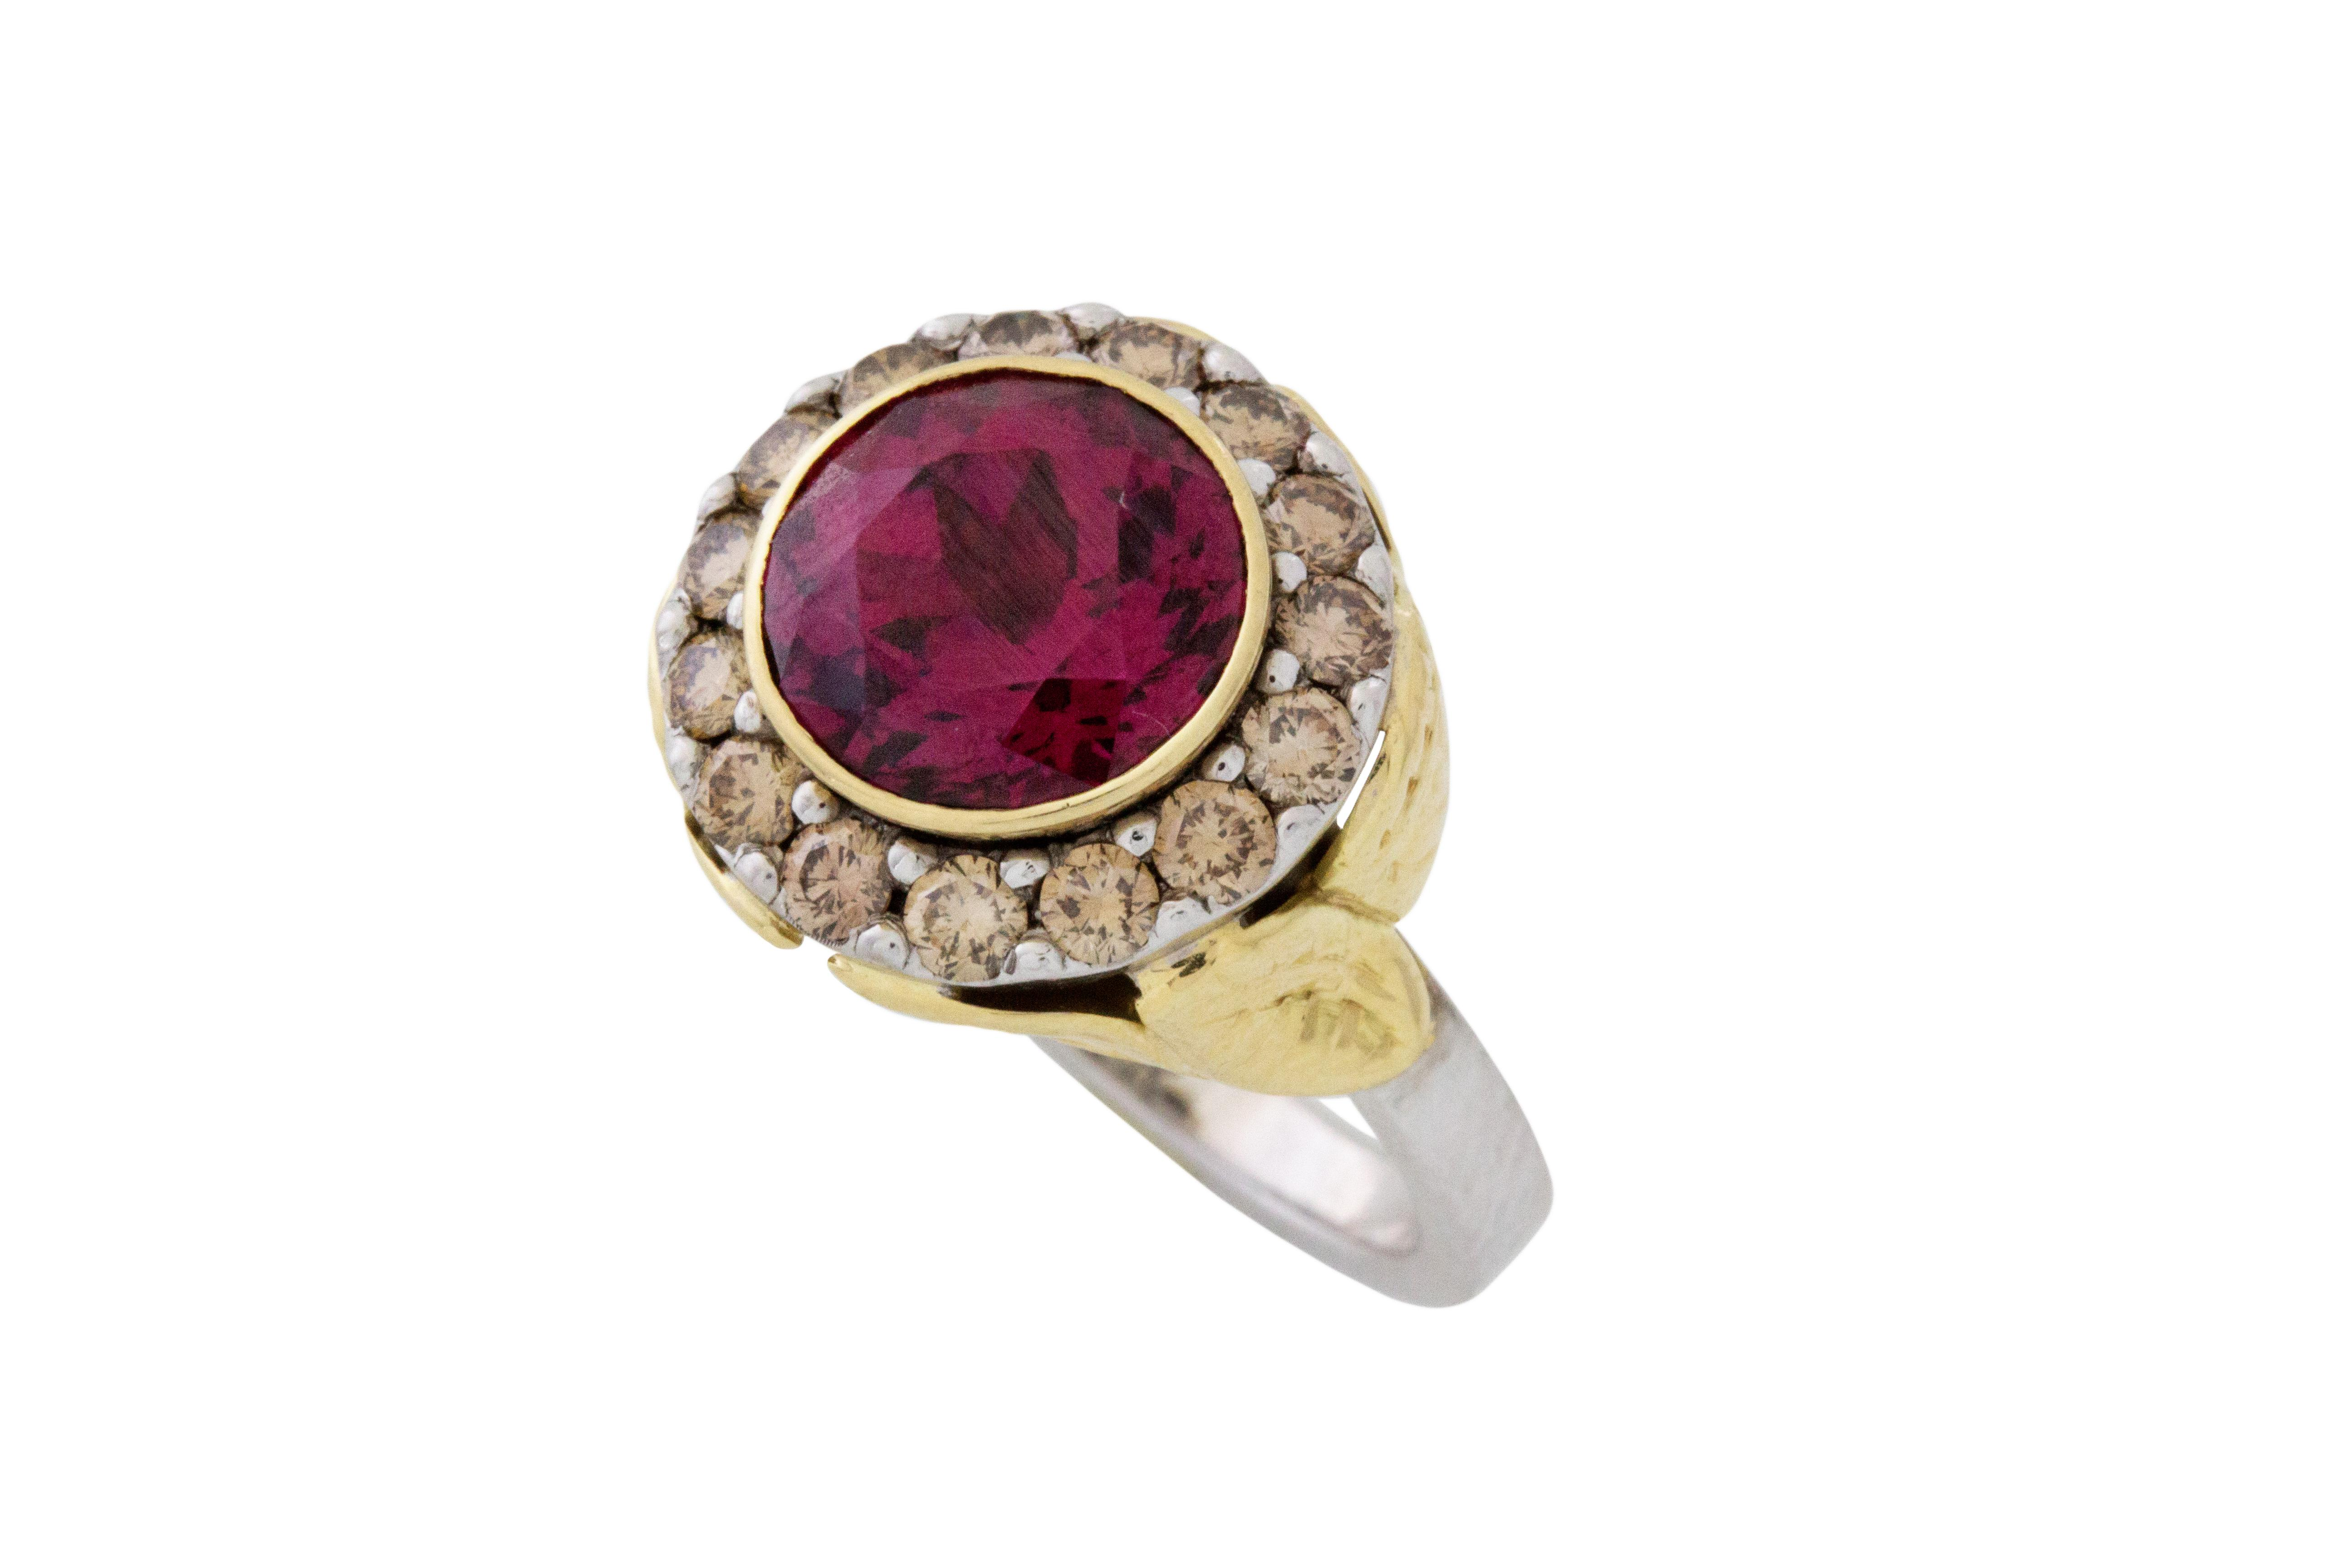 18ct White & Yellow Gold Rhodolite Garnet & Cognac Diamond Ring - 50% OFF!